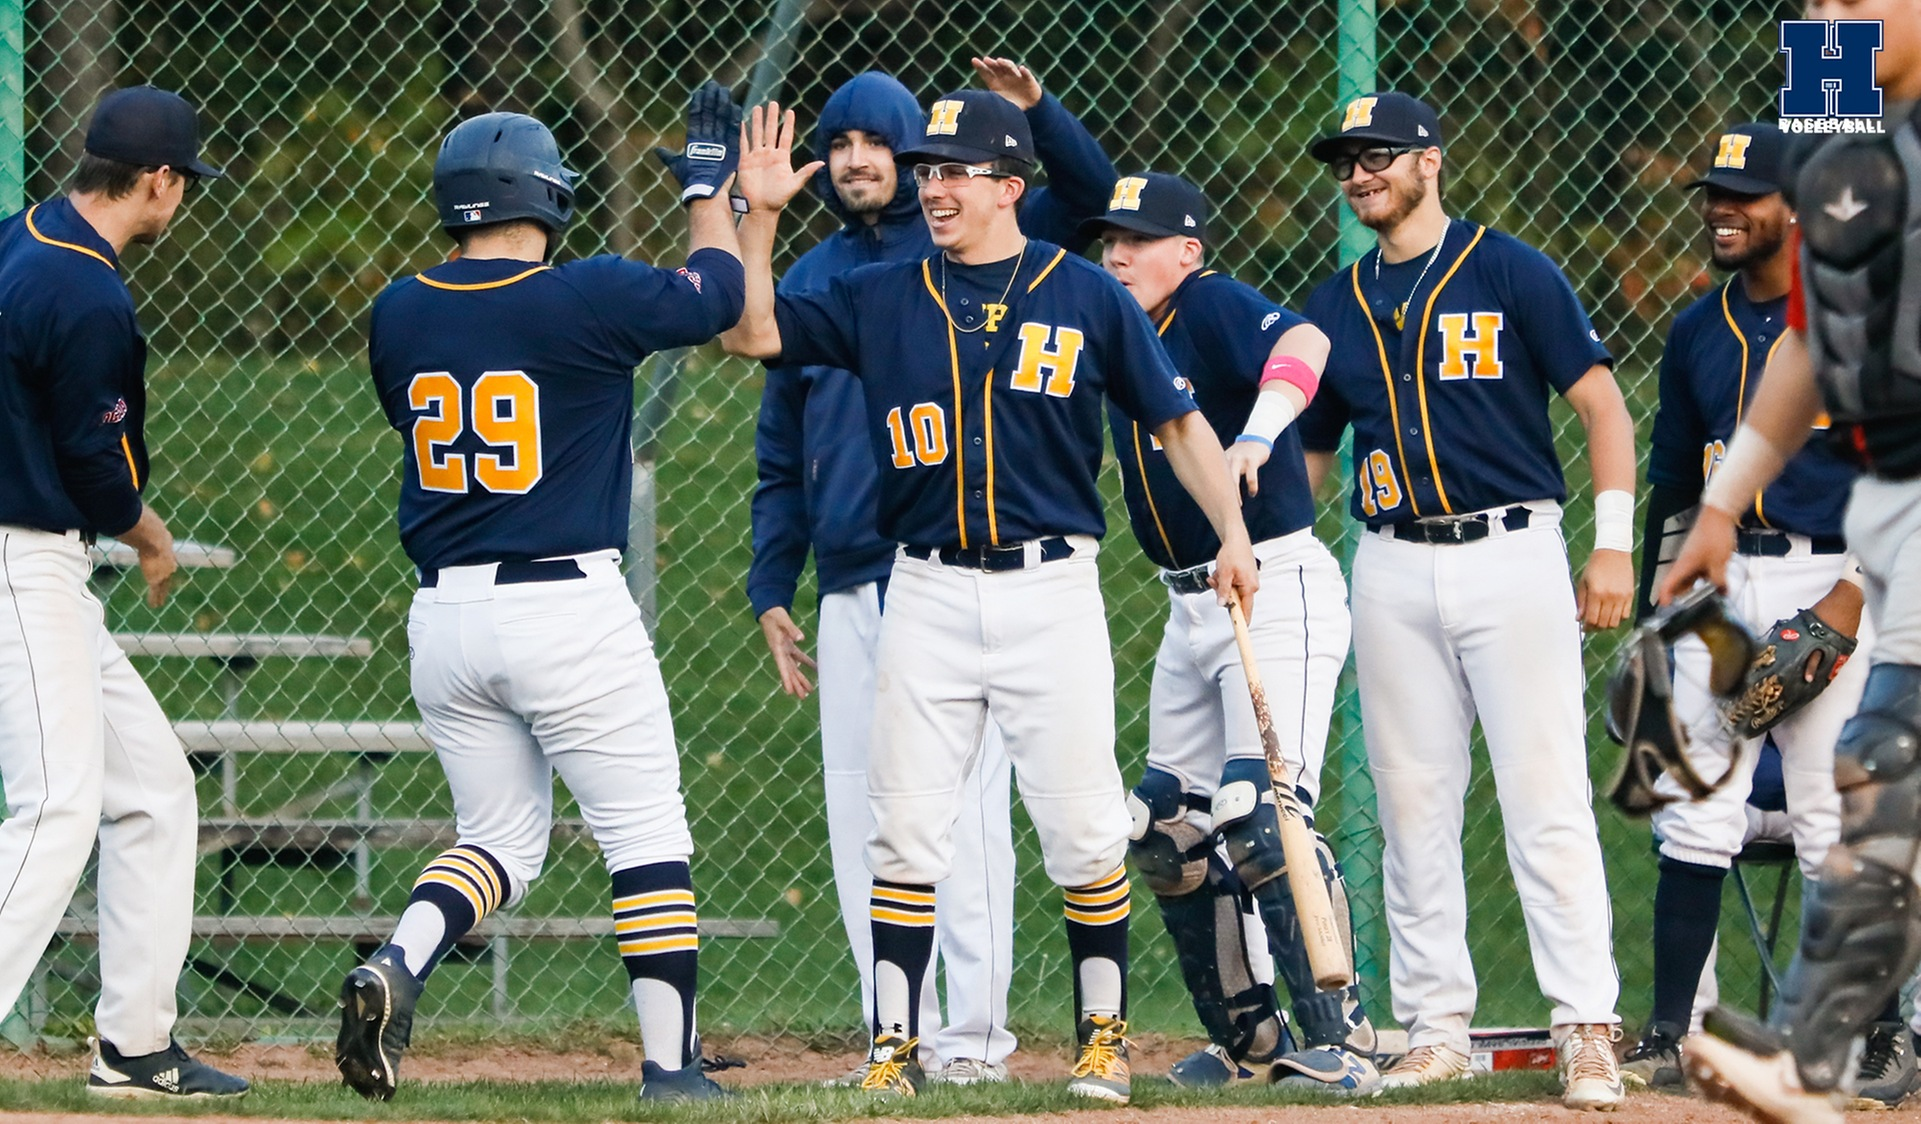 Baseball Splits With Seneca on Seniors Night